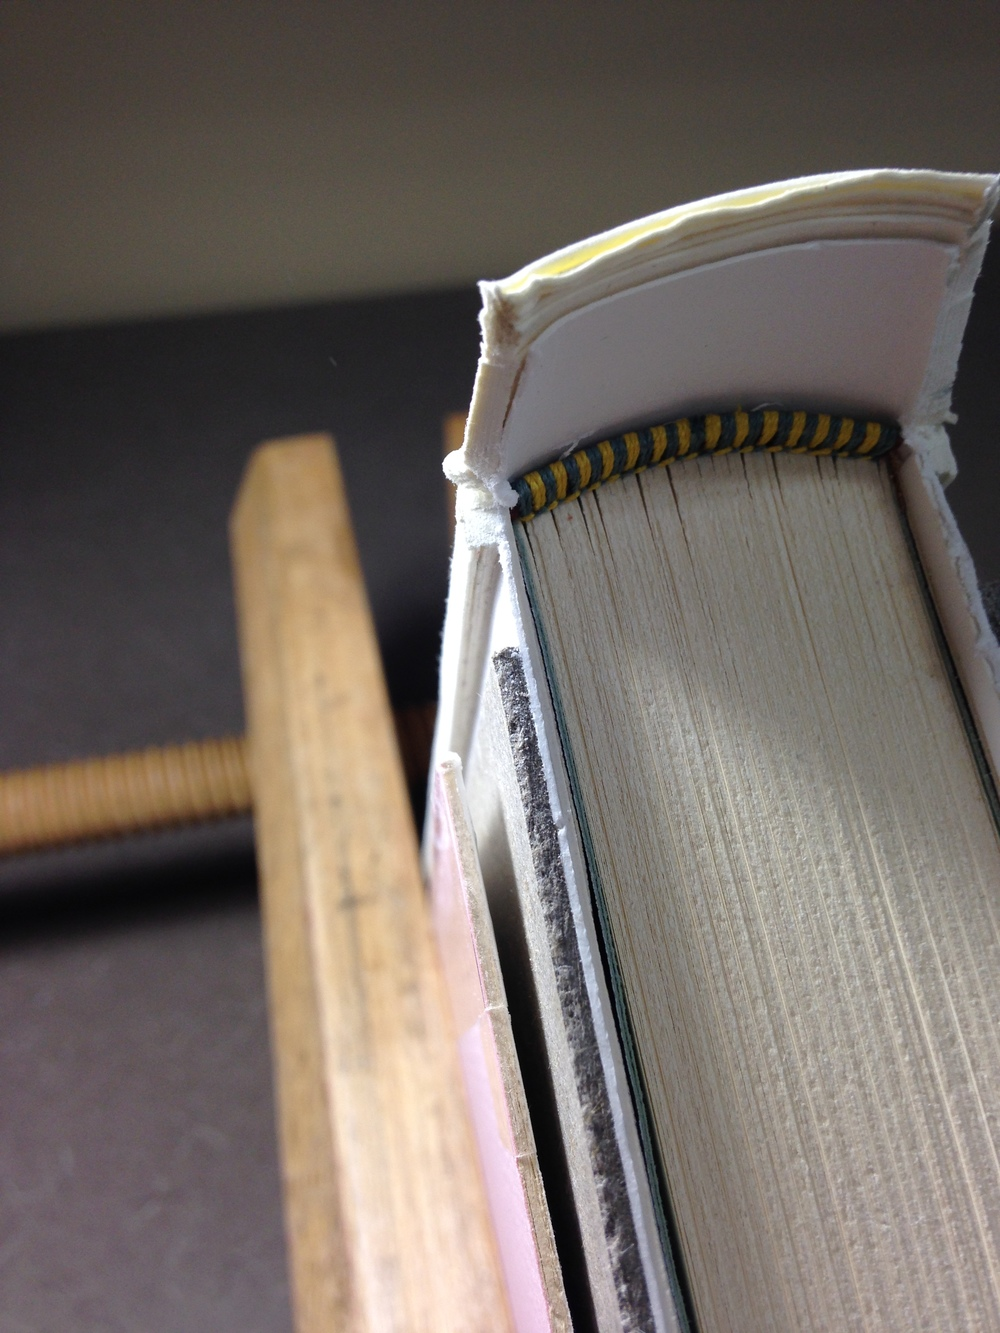 I used a serrated saw in combination with the cleaner-cut of a smooth edge paper knife to remove the excess material.